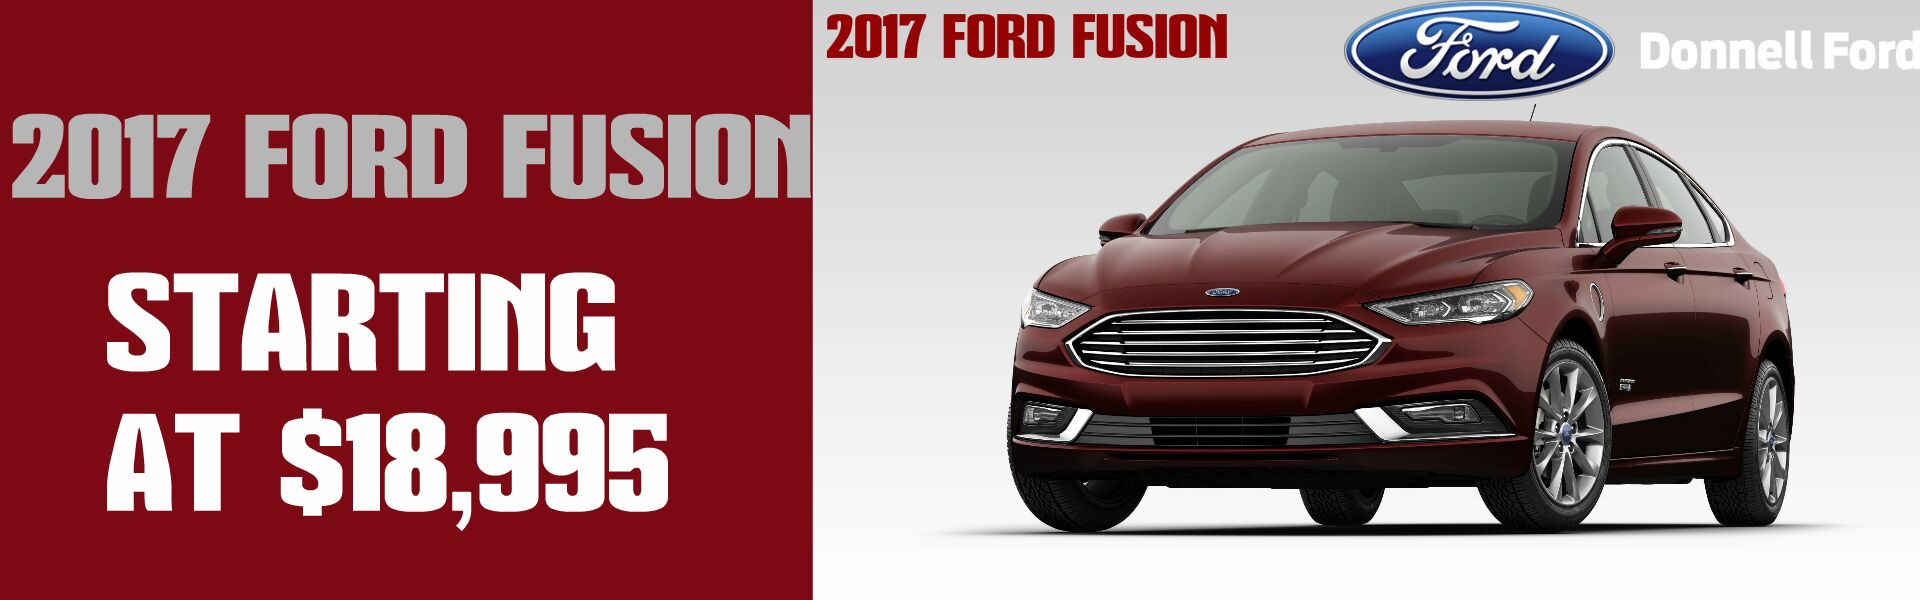 Donnell Ford April 2017 Ford Fusion Message